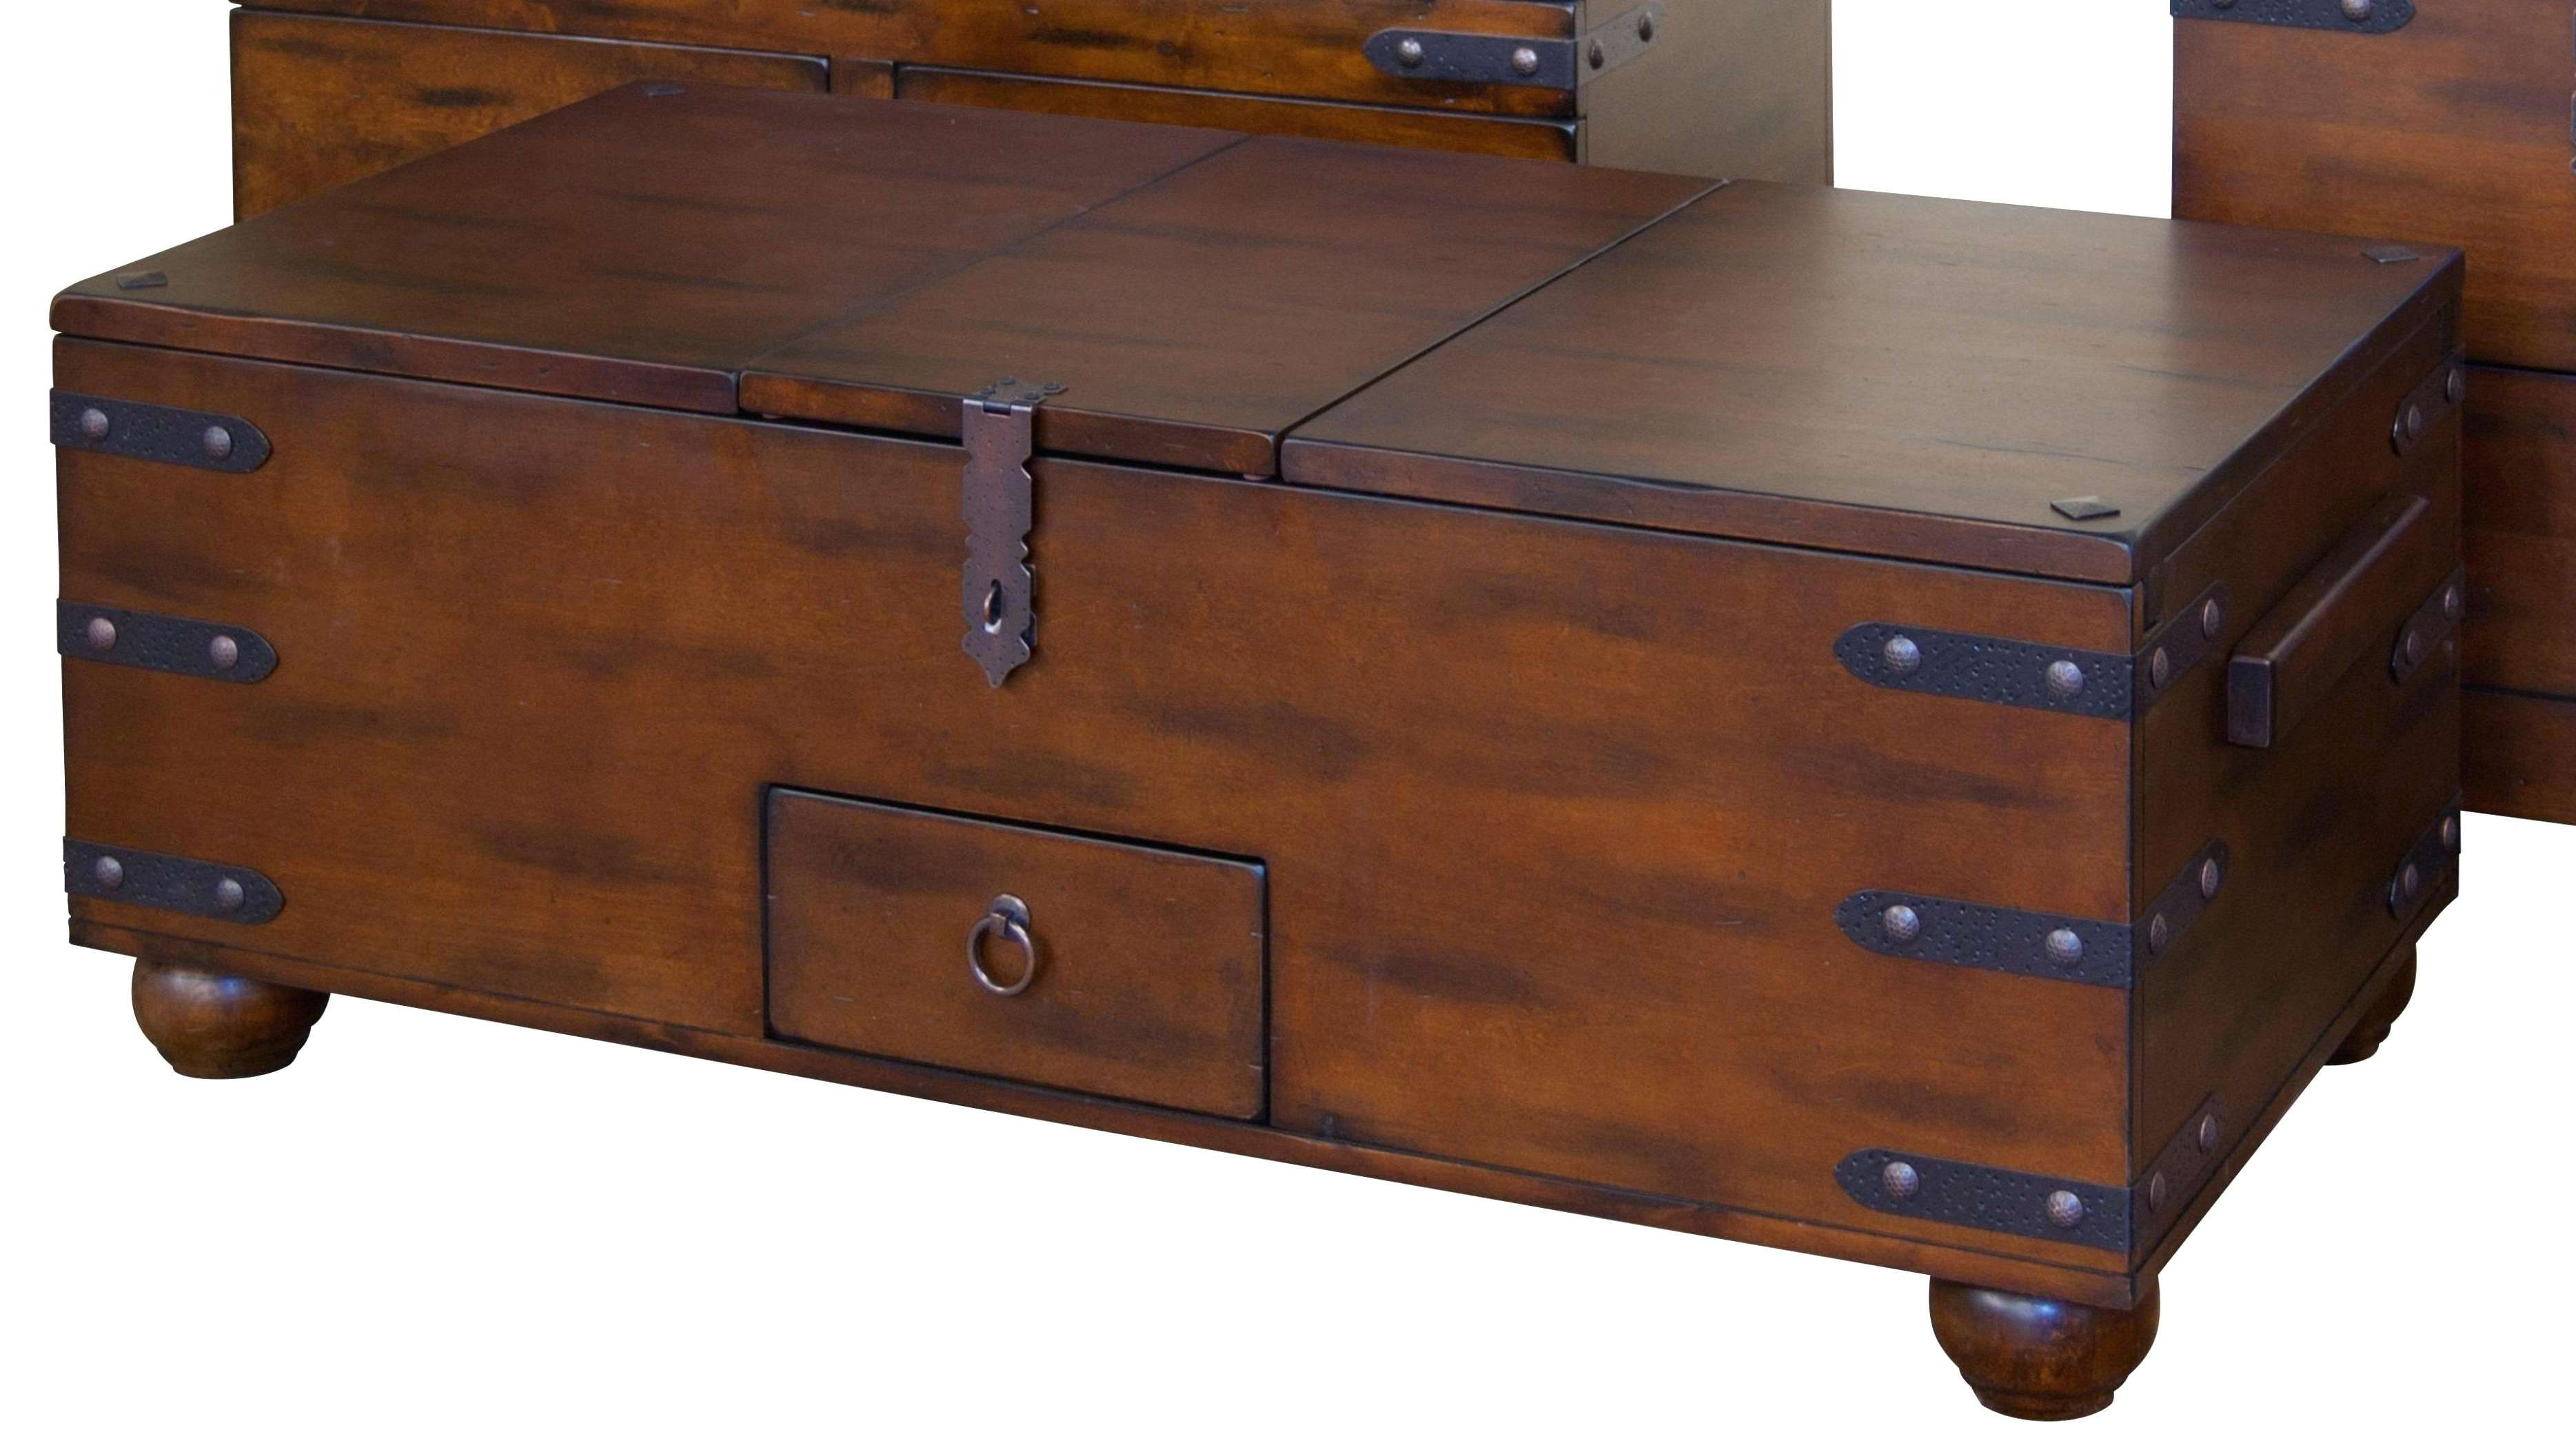 Cd Wall Mounted Storage Image Of Wood Coffee Table Trunk Shoe Regarding Newest Cd Storage Coffee Tables (View 5 of 20)